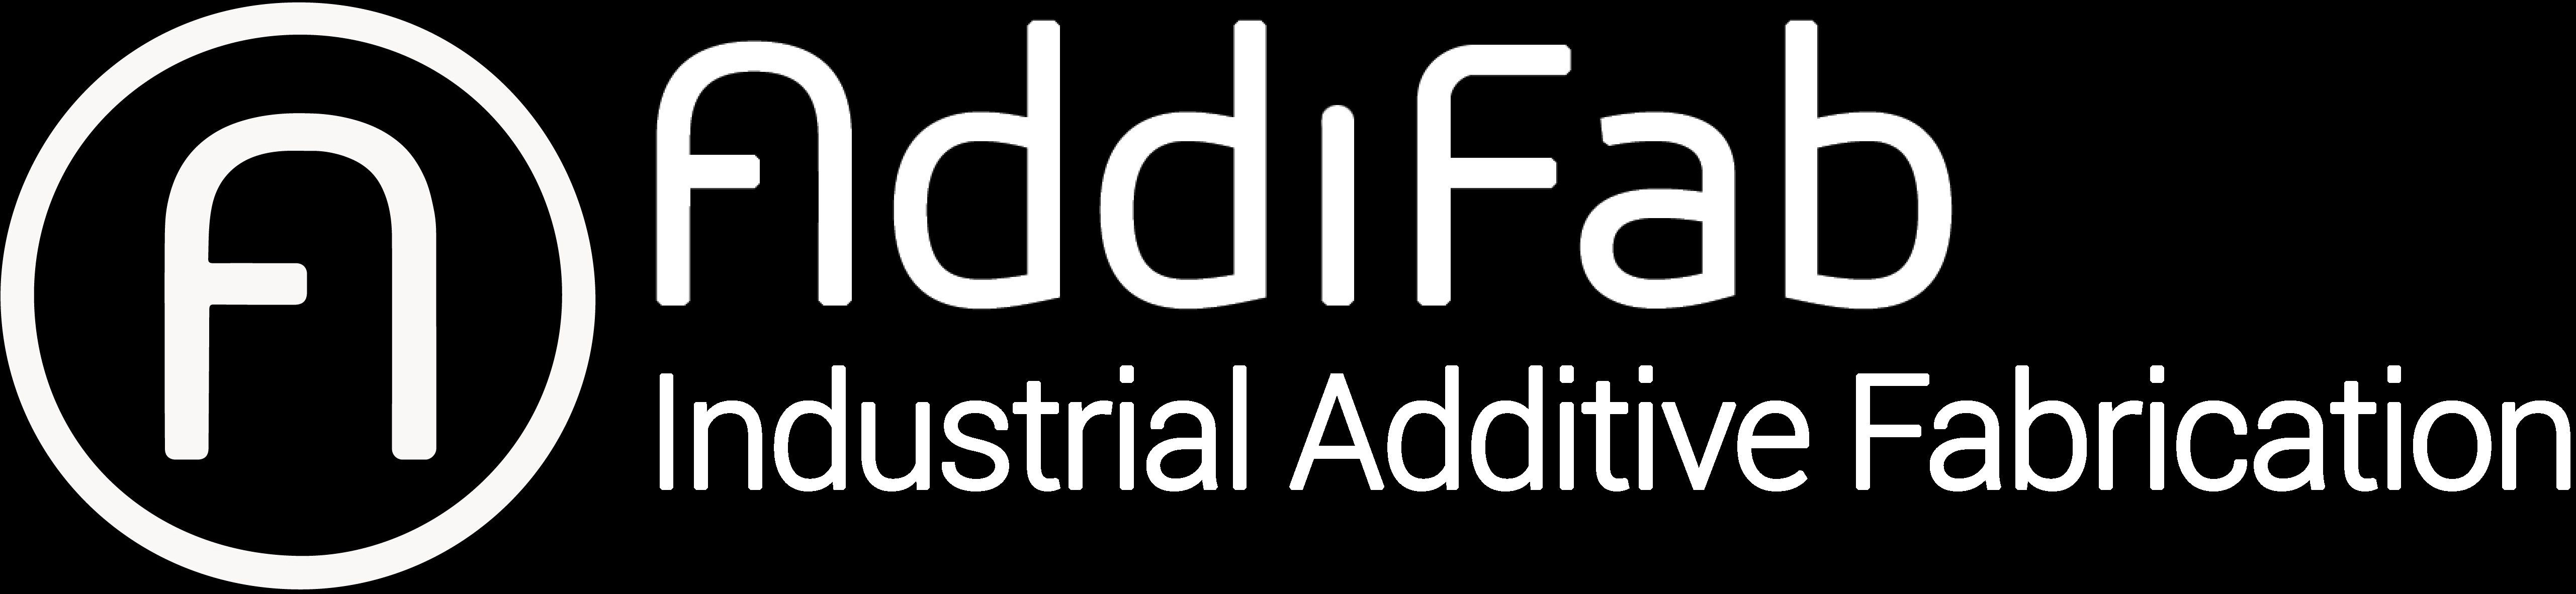 addifab-logo